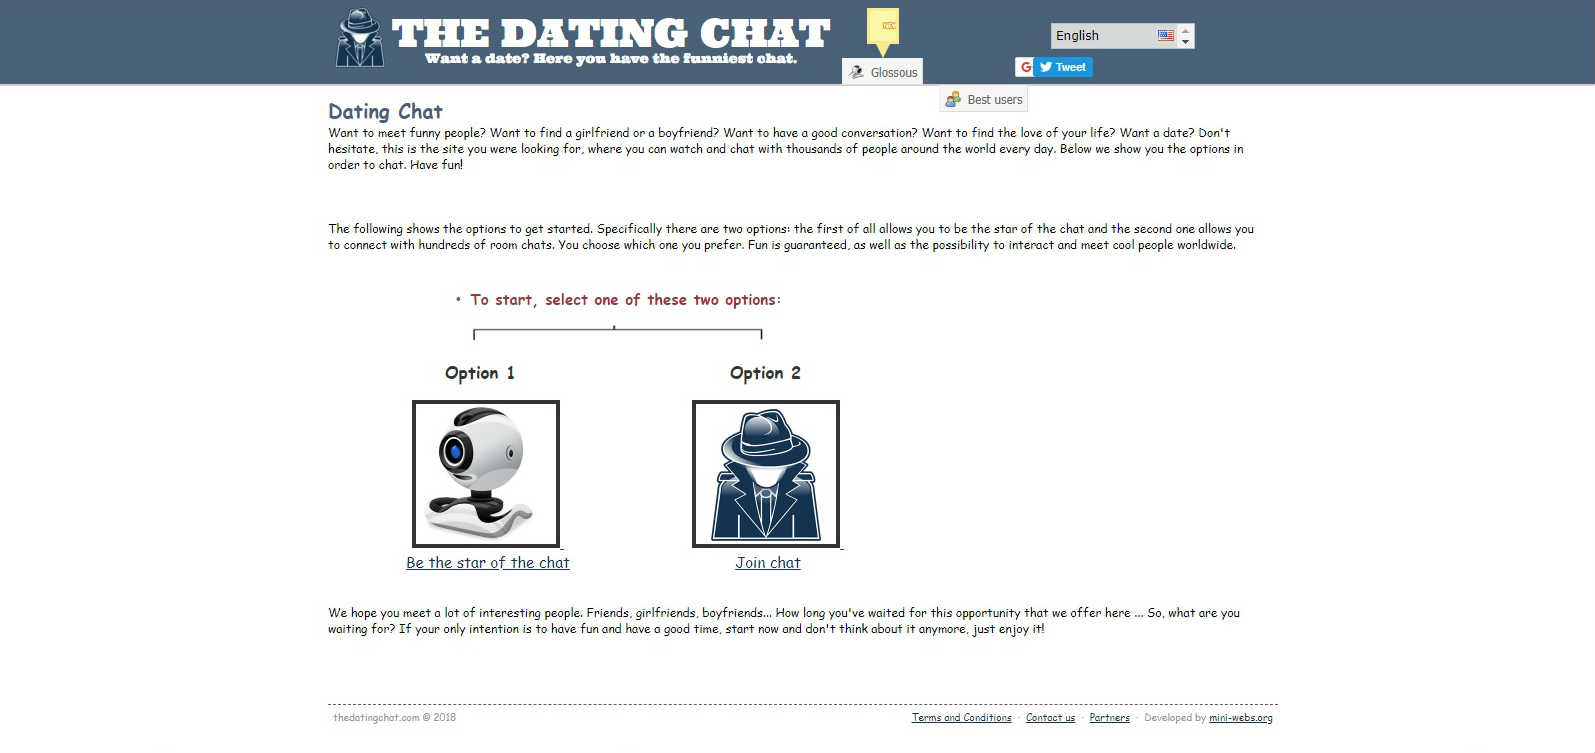 How to chat with people on dating sites